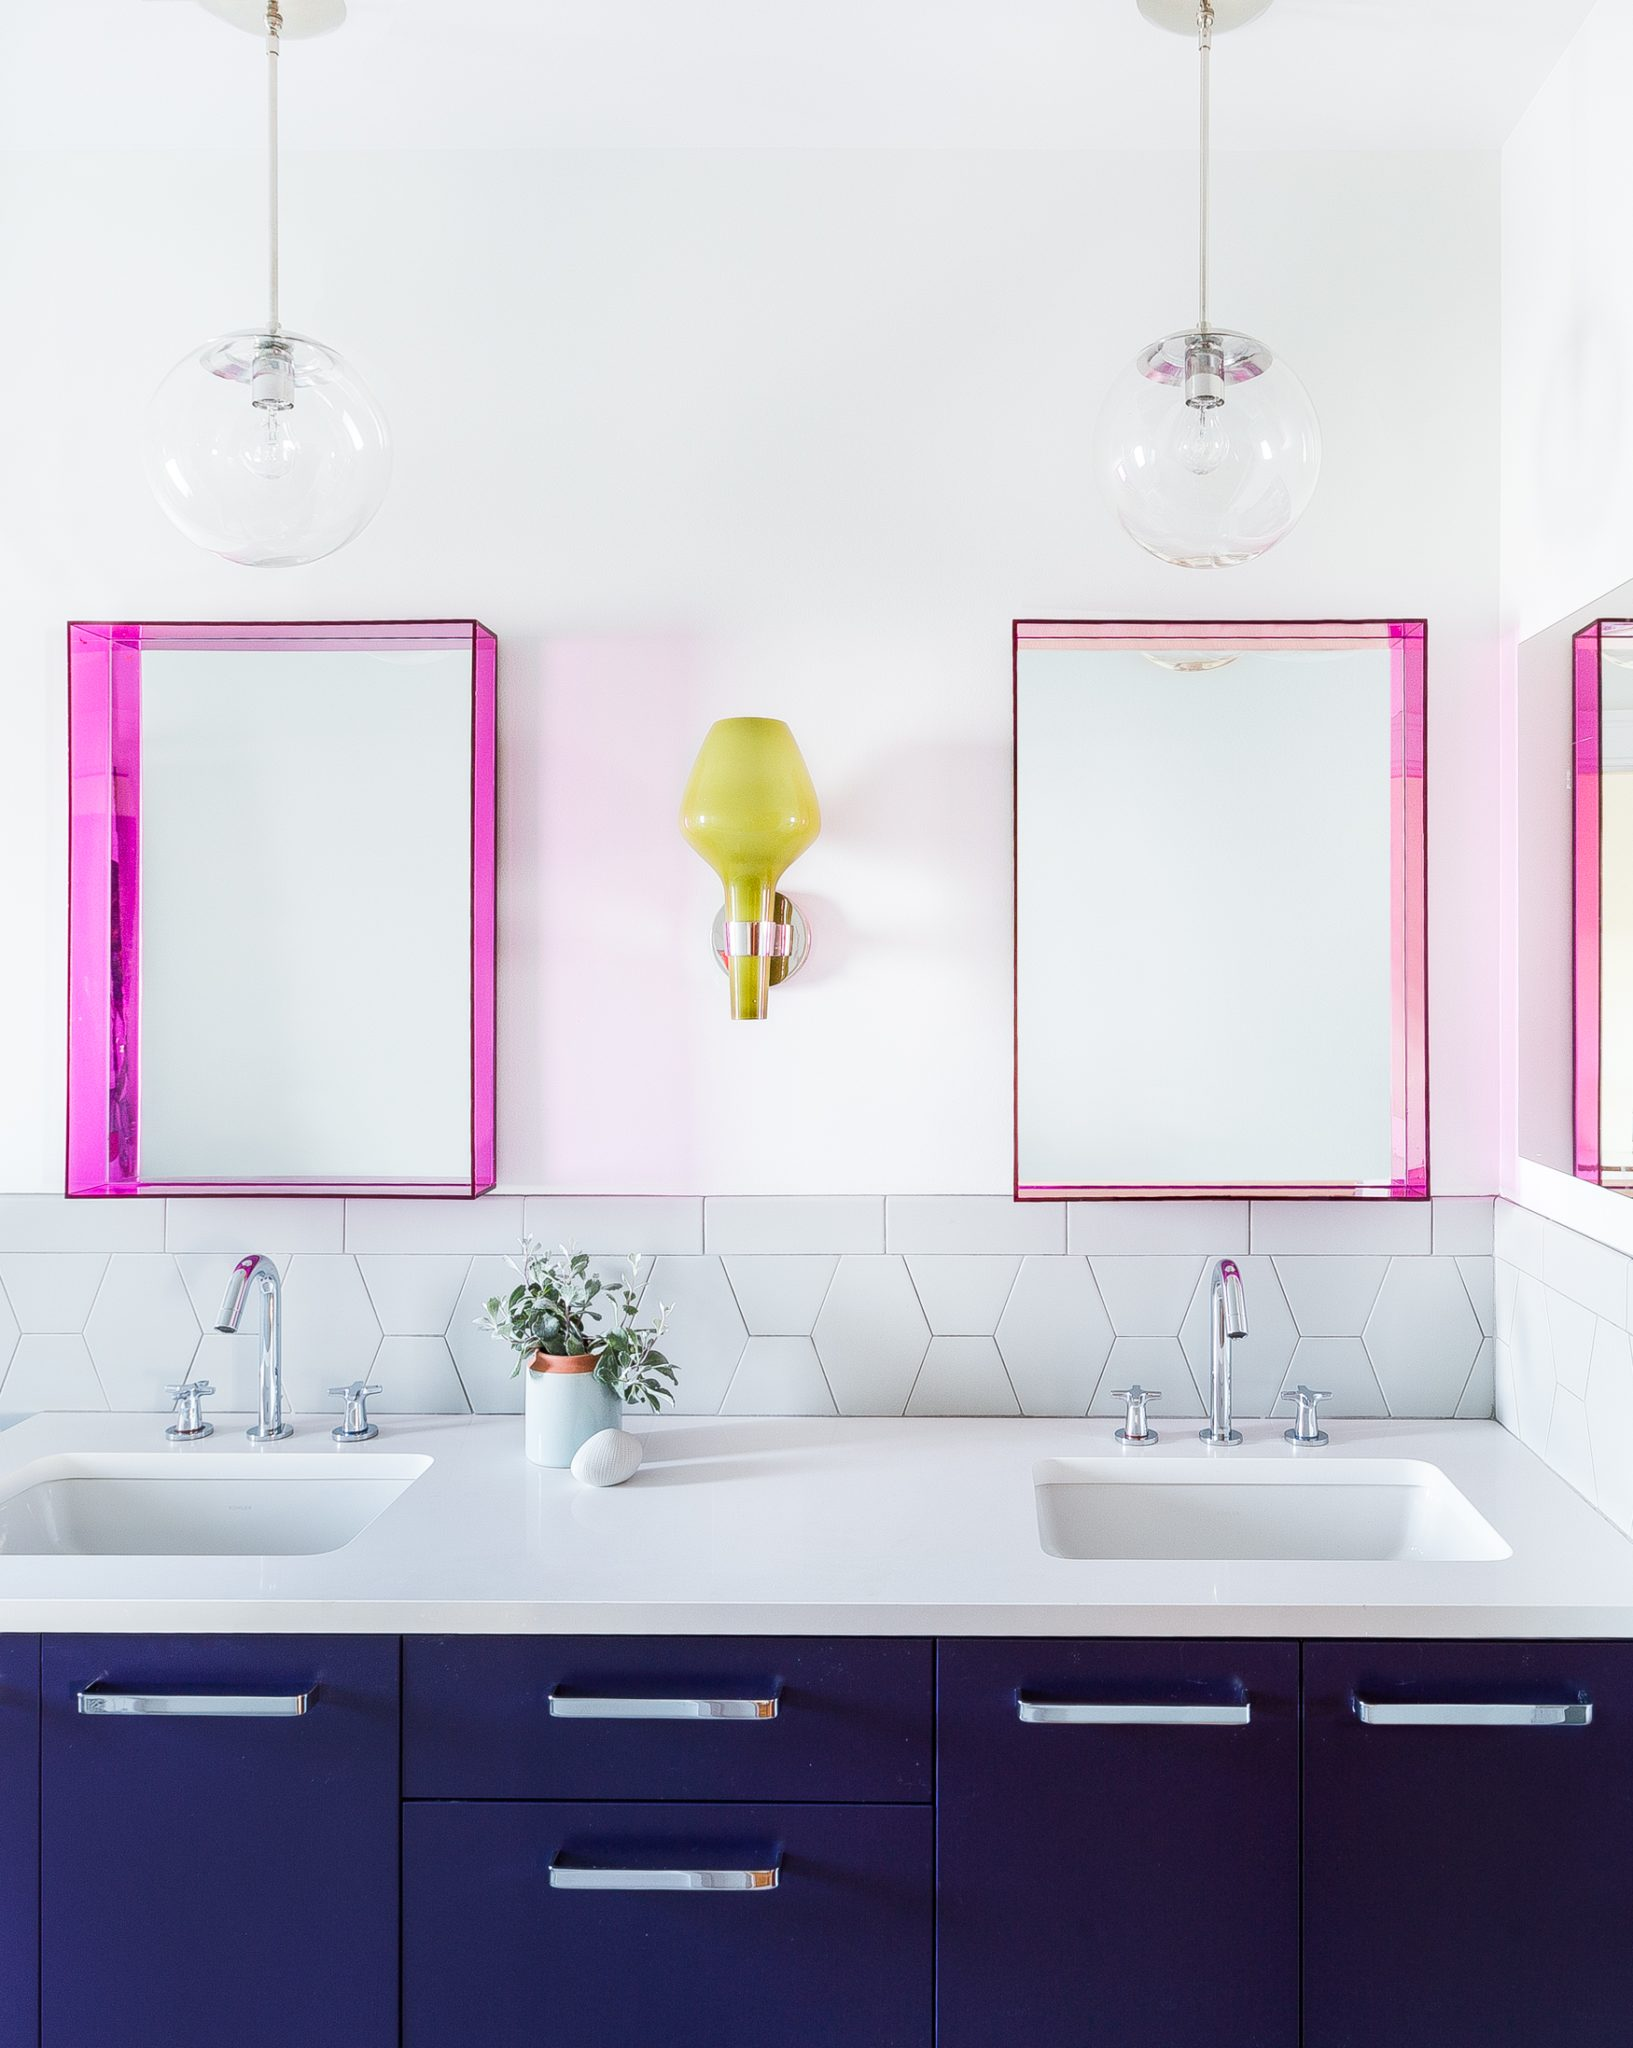 For the children's bath, Kenna approached the space with a distinctly contemporary style. A transparent acrylic finish gives the Kartell mirrors a fluorescent pink glow, which stands out against the white backsplash from Daltile. The pendant lights above the mirrors are from Schoolhouse.